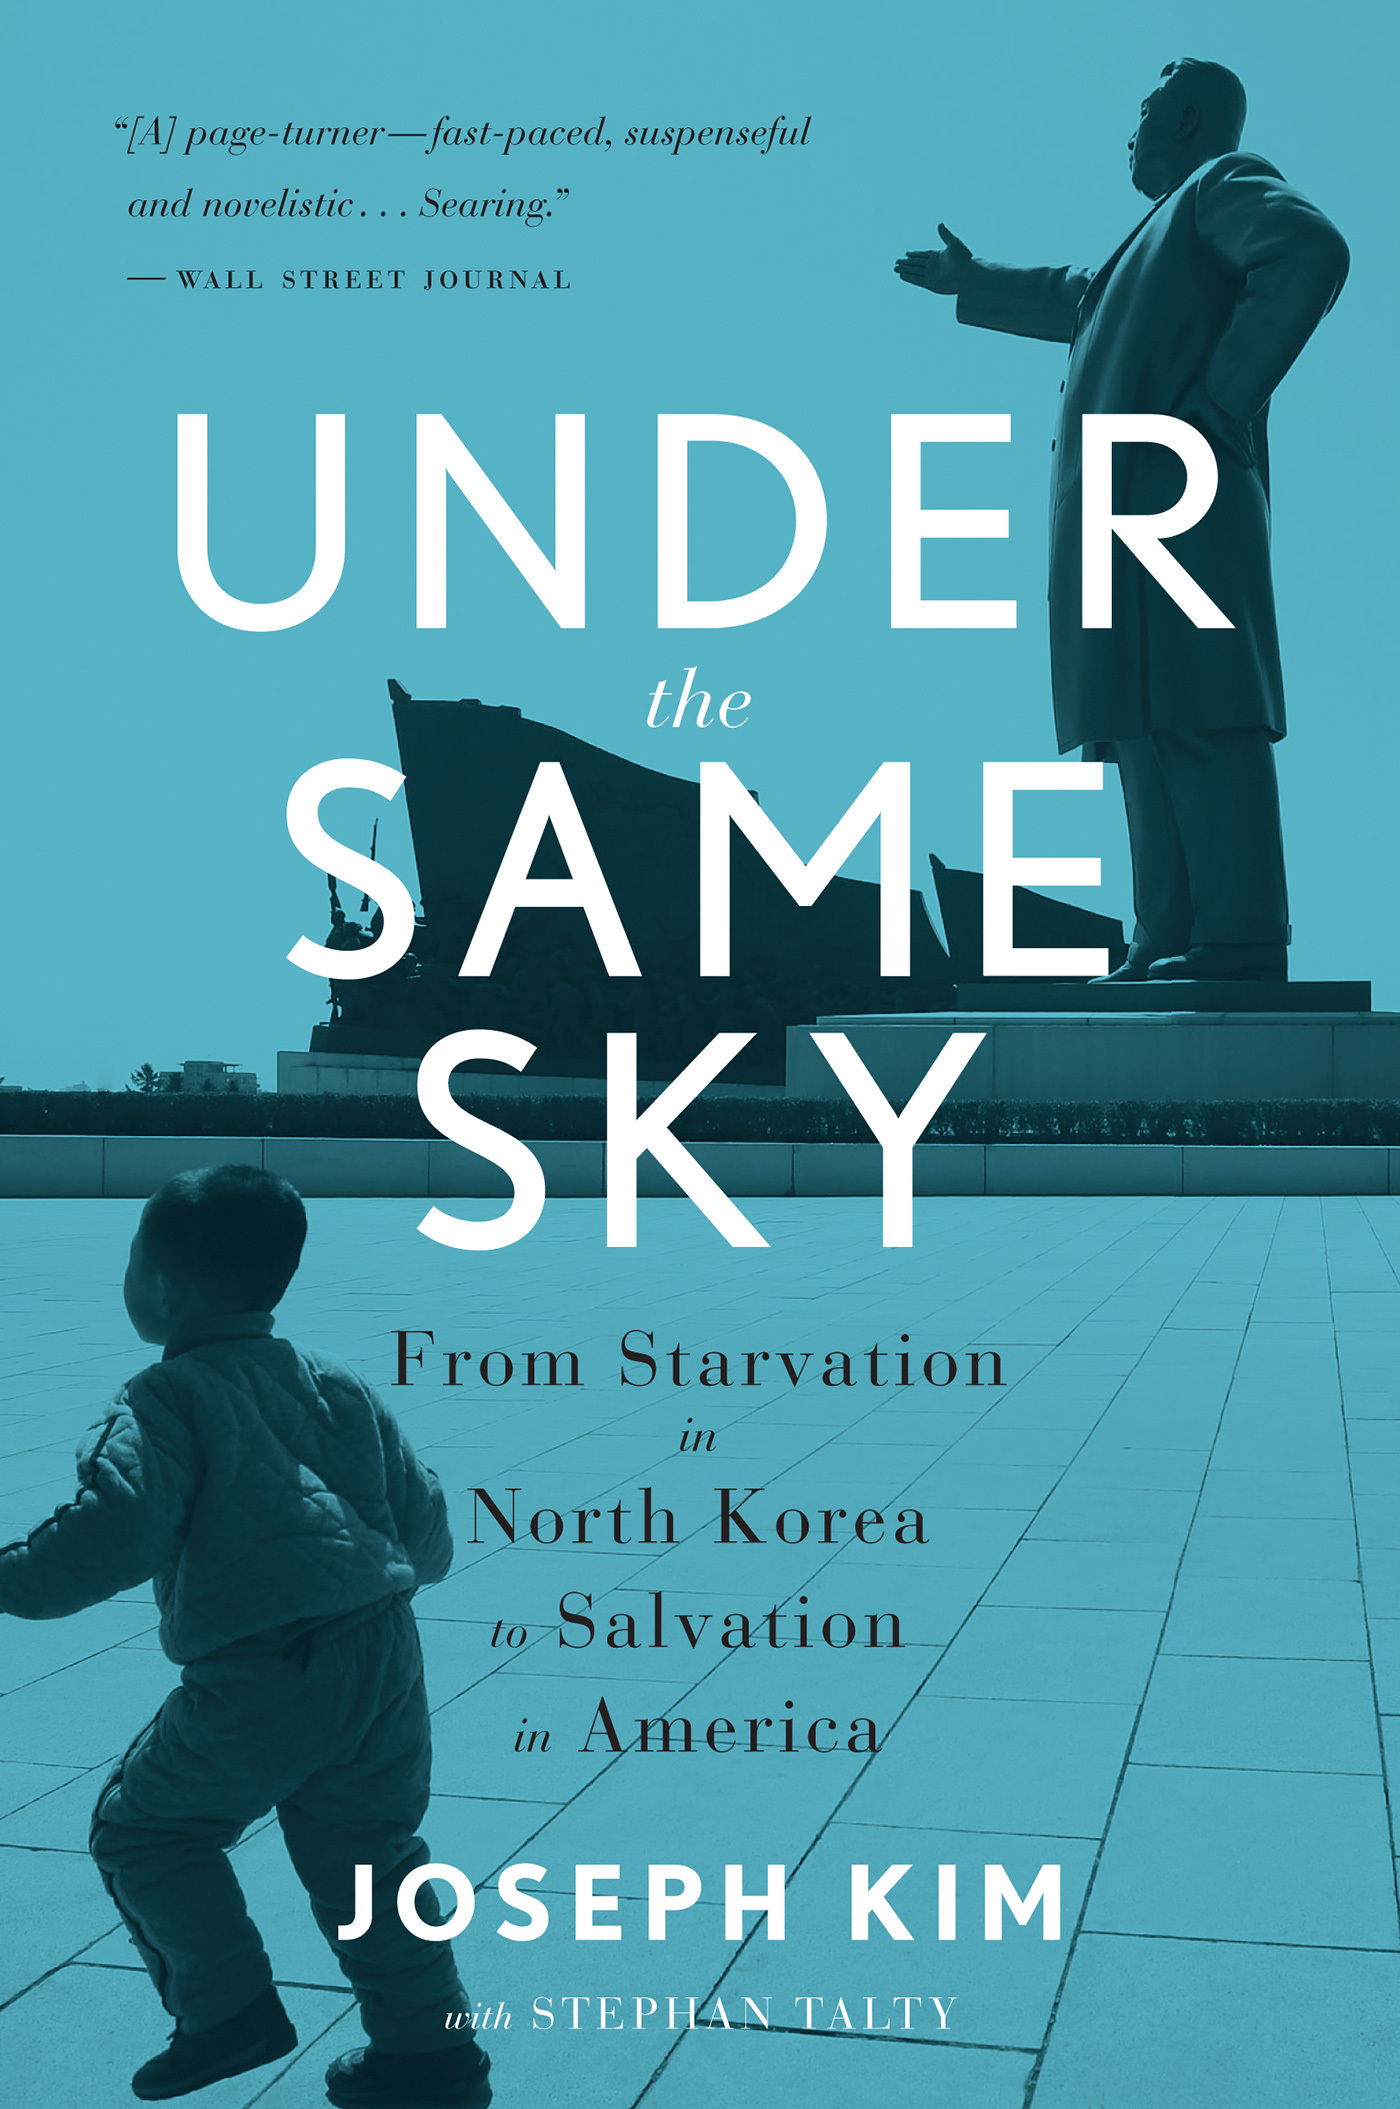 Under the Same Sky- From Starvation in North Korea to Salvation in America